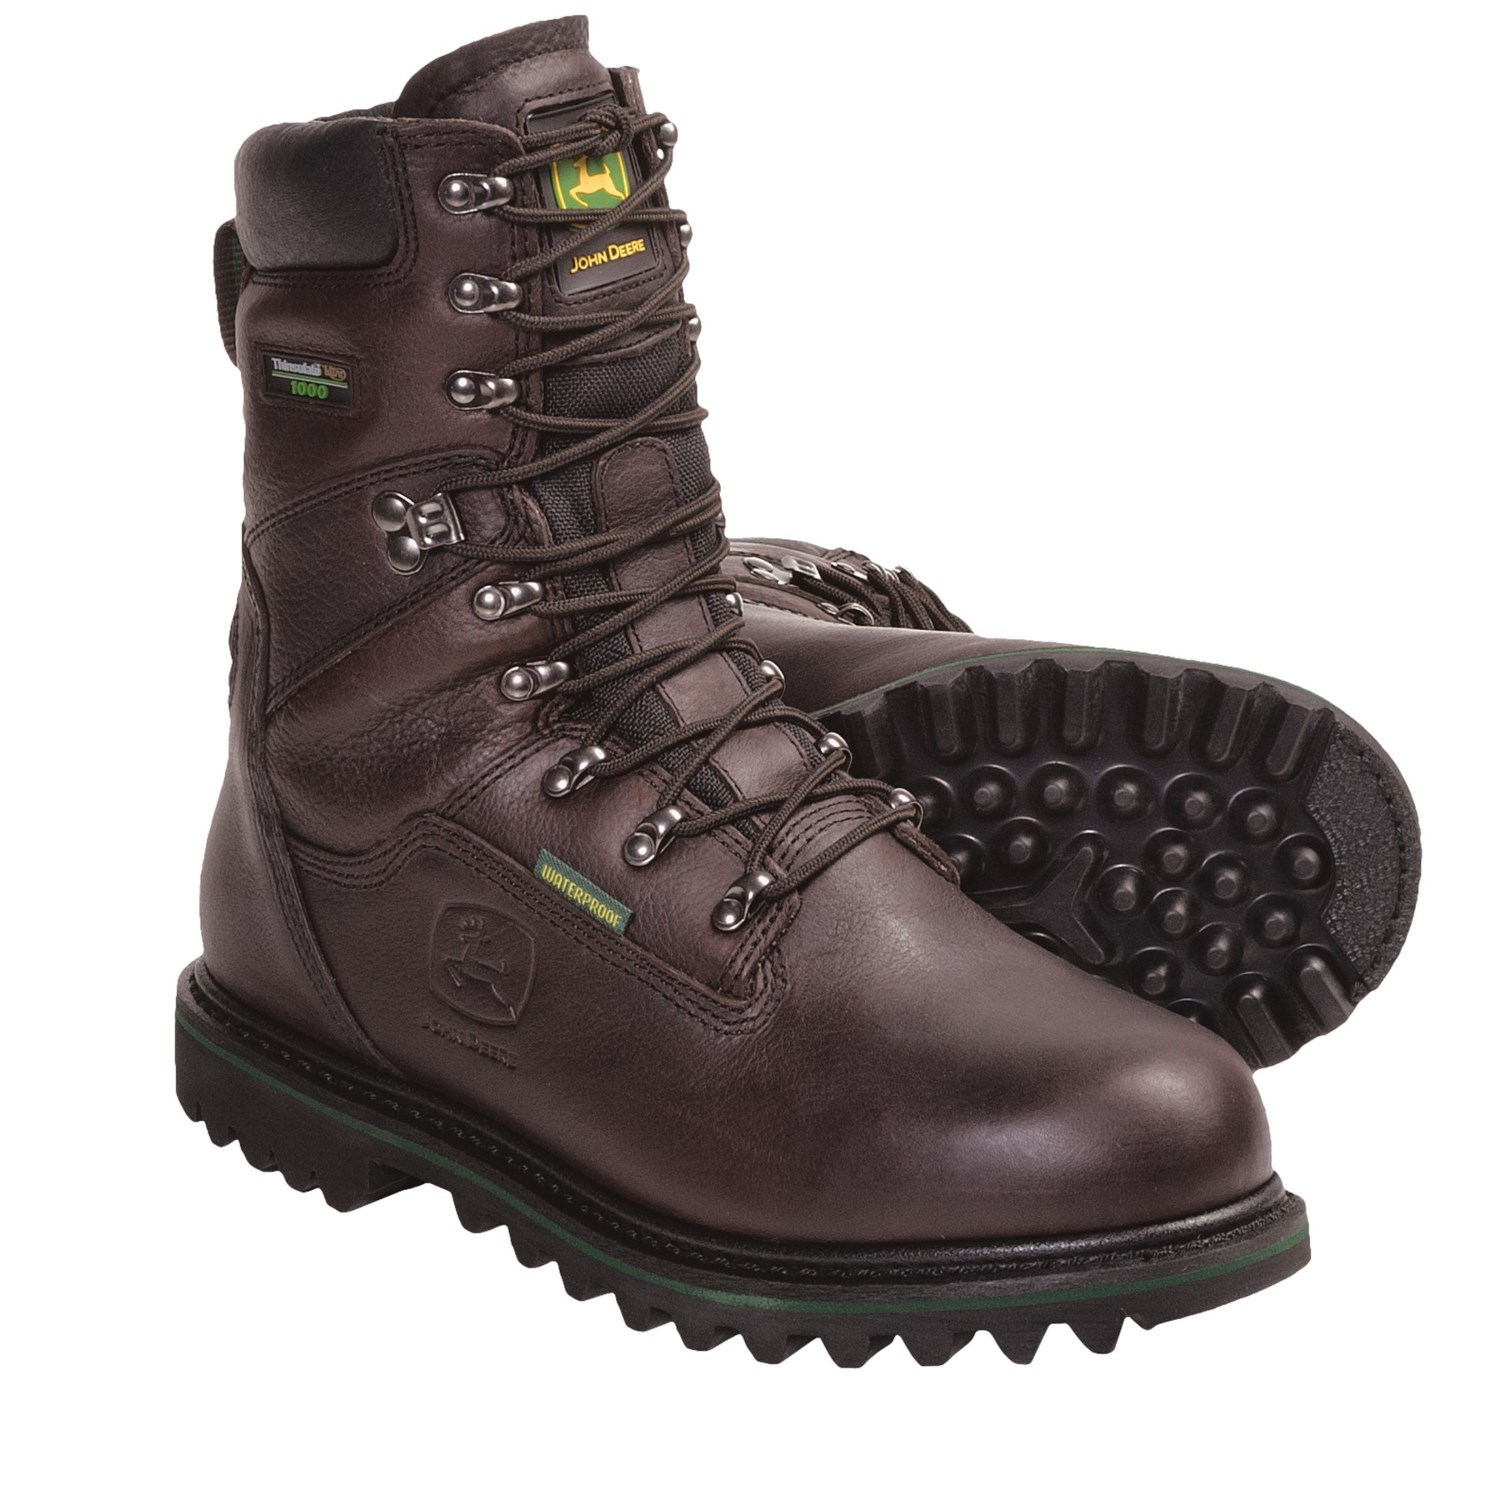 deere 9 quot lace up work boots waterproof insulated